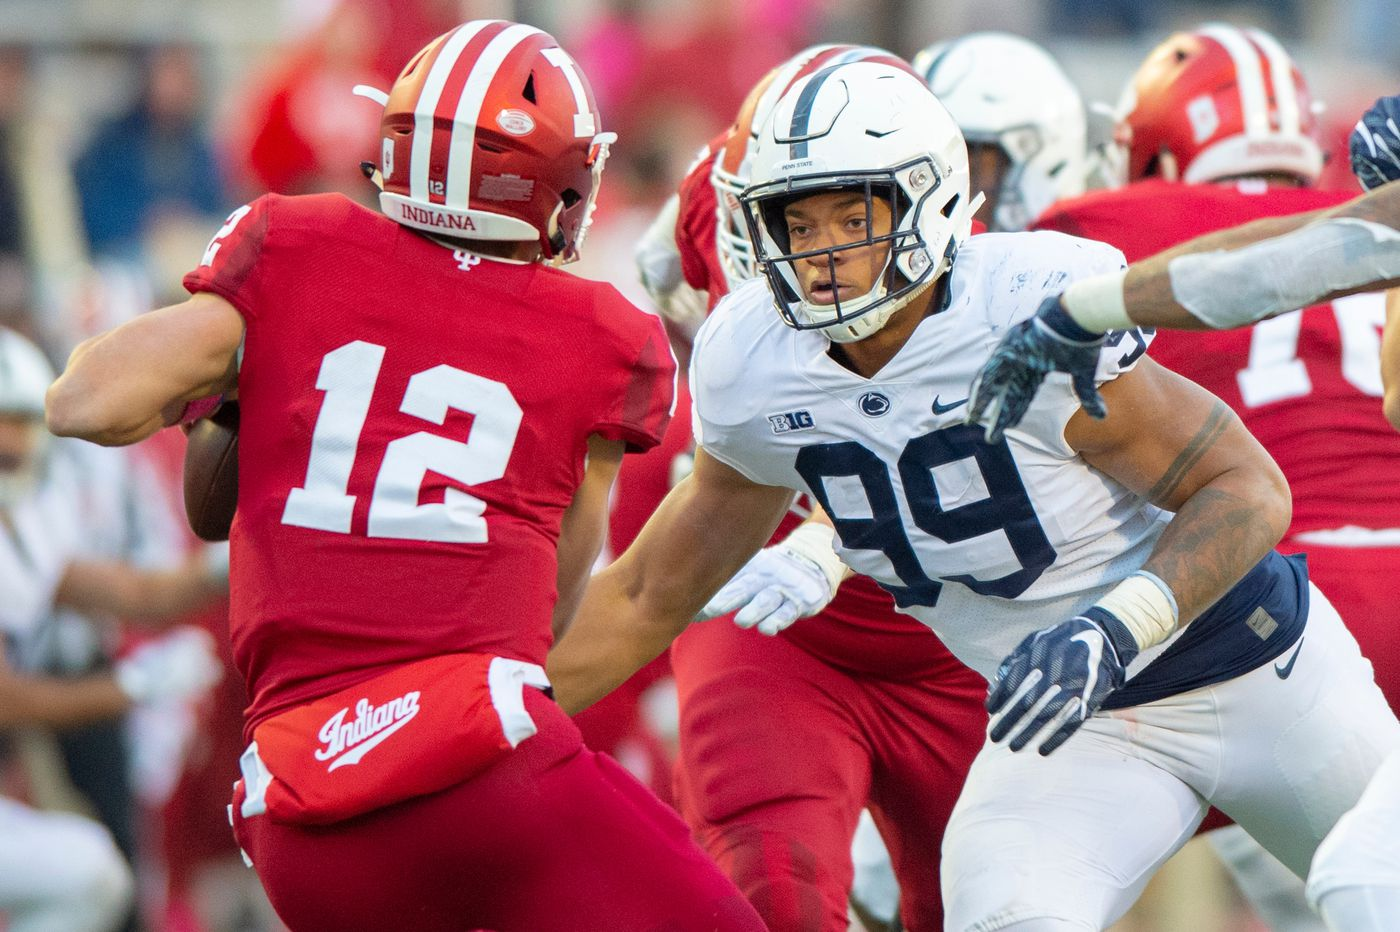 Penn State announces suspensions of defensive end Yetur Gross-Matos, running back Journey Brown